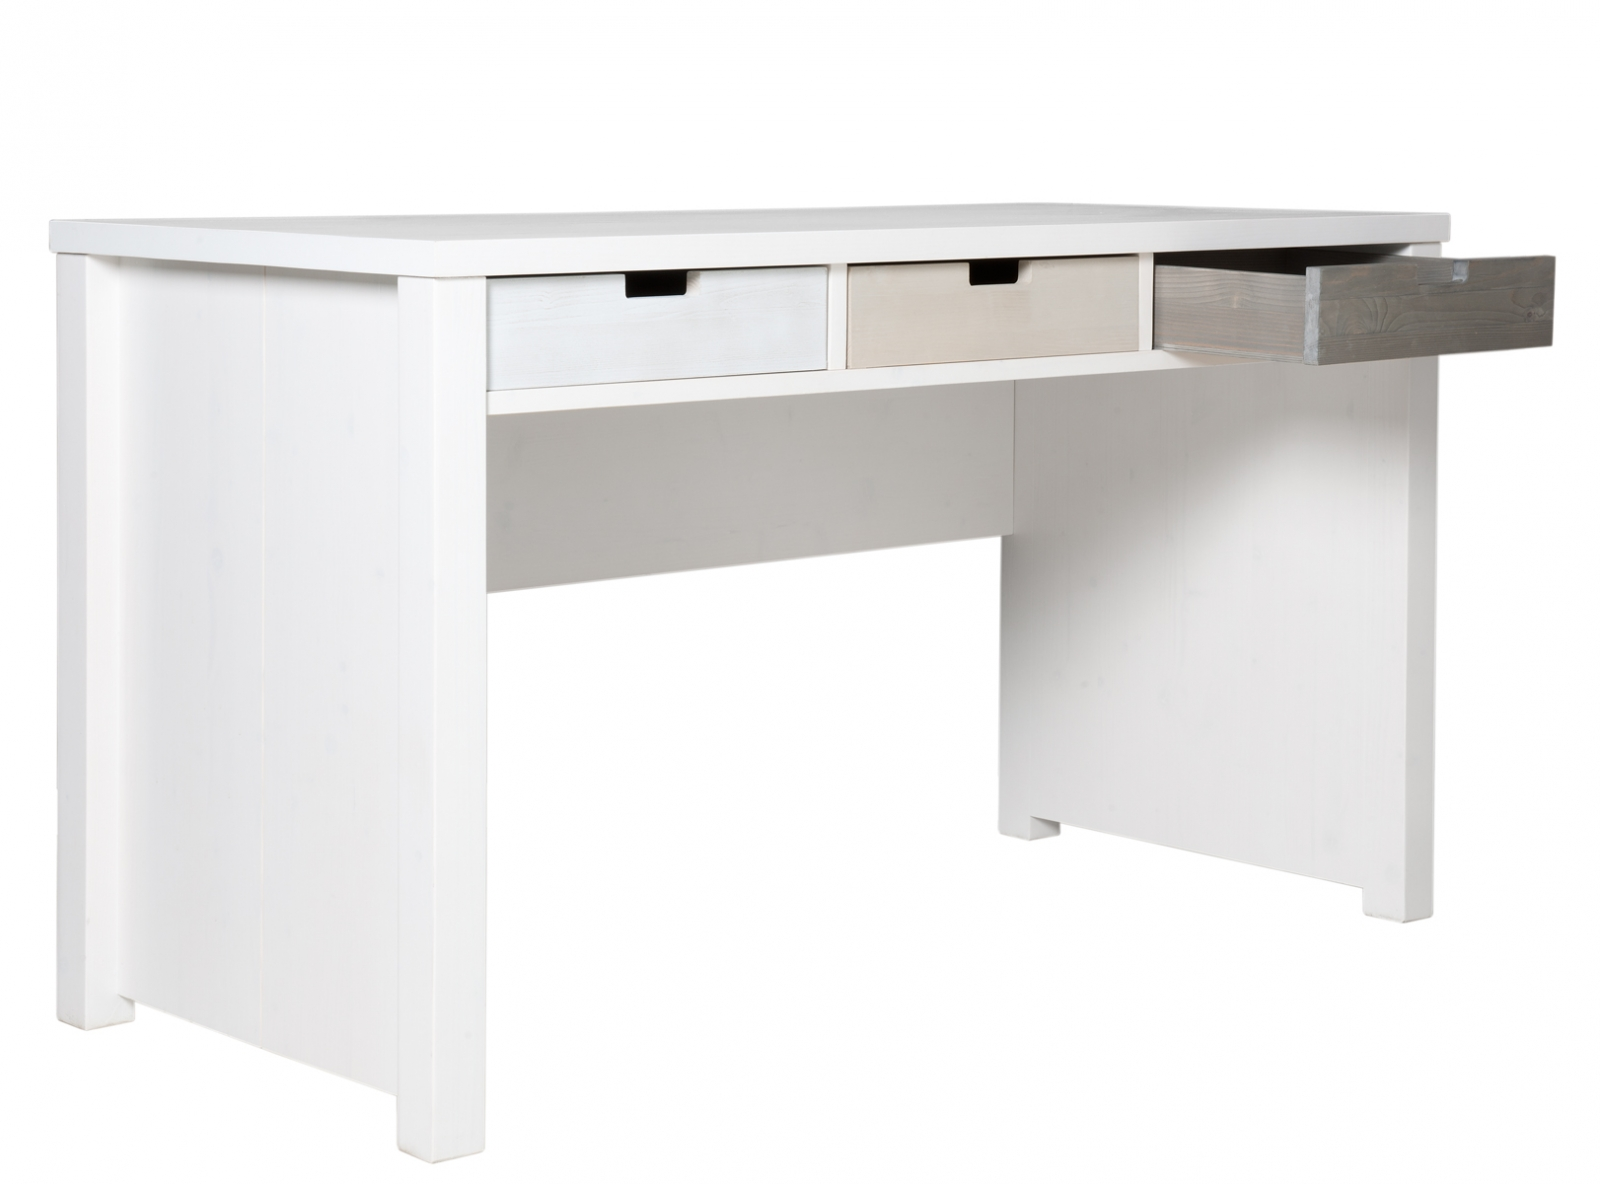 Bopita Basic Wood Bureau